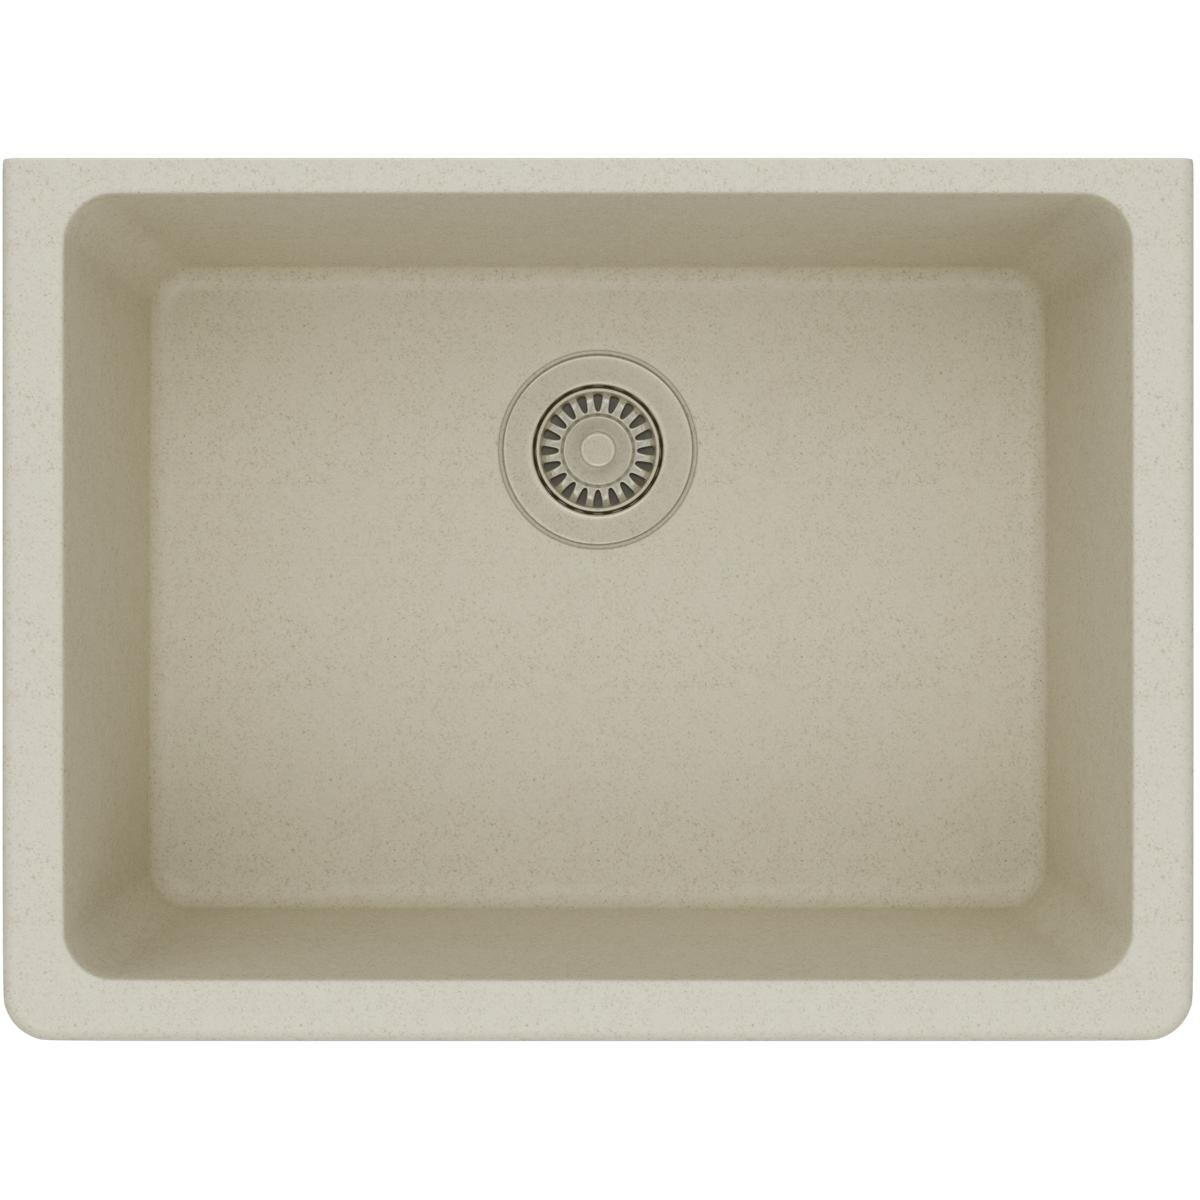 Elkay Quartz Classic ELGU2522BQ0 Bisque Single Bowl Undermount Sink